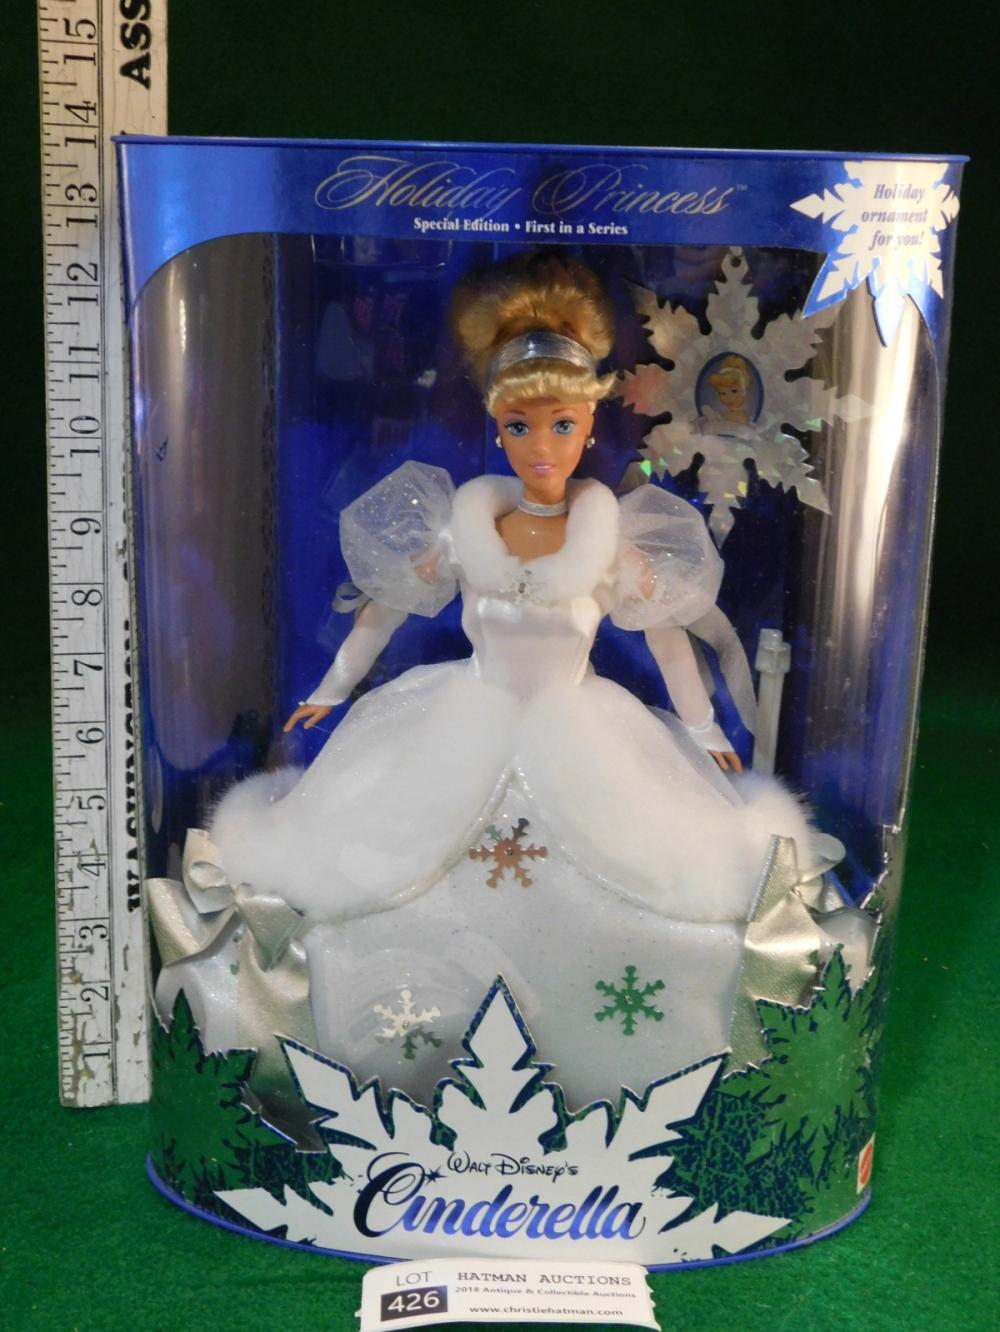 CINDERELLA BARBIE HOLIDAY PRINCESS 1996